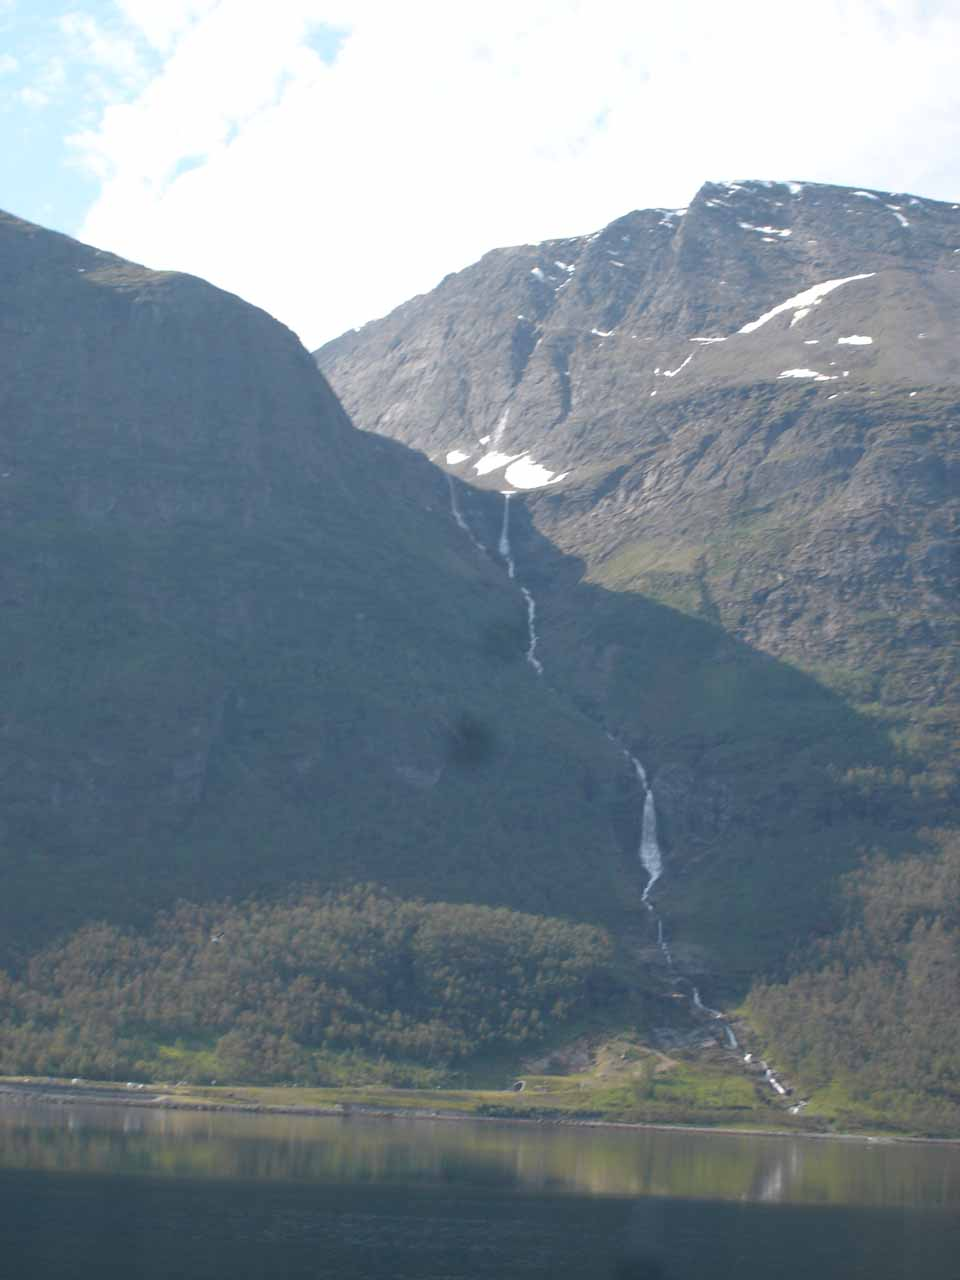 Looking back at a waterfall I'm calling Båfossen as we headed further east to the head of Kåfjorden